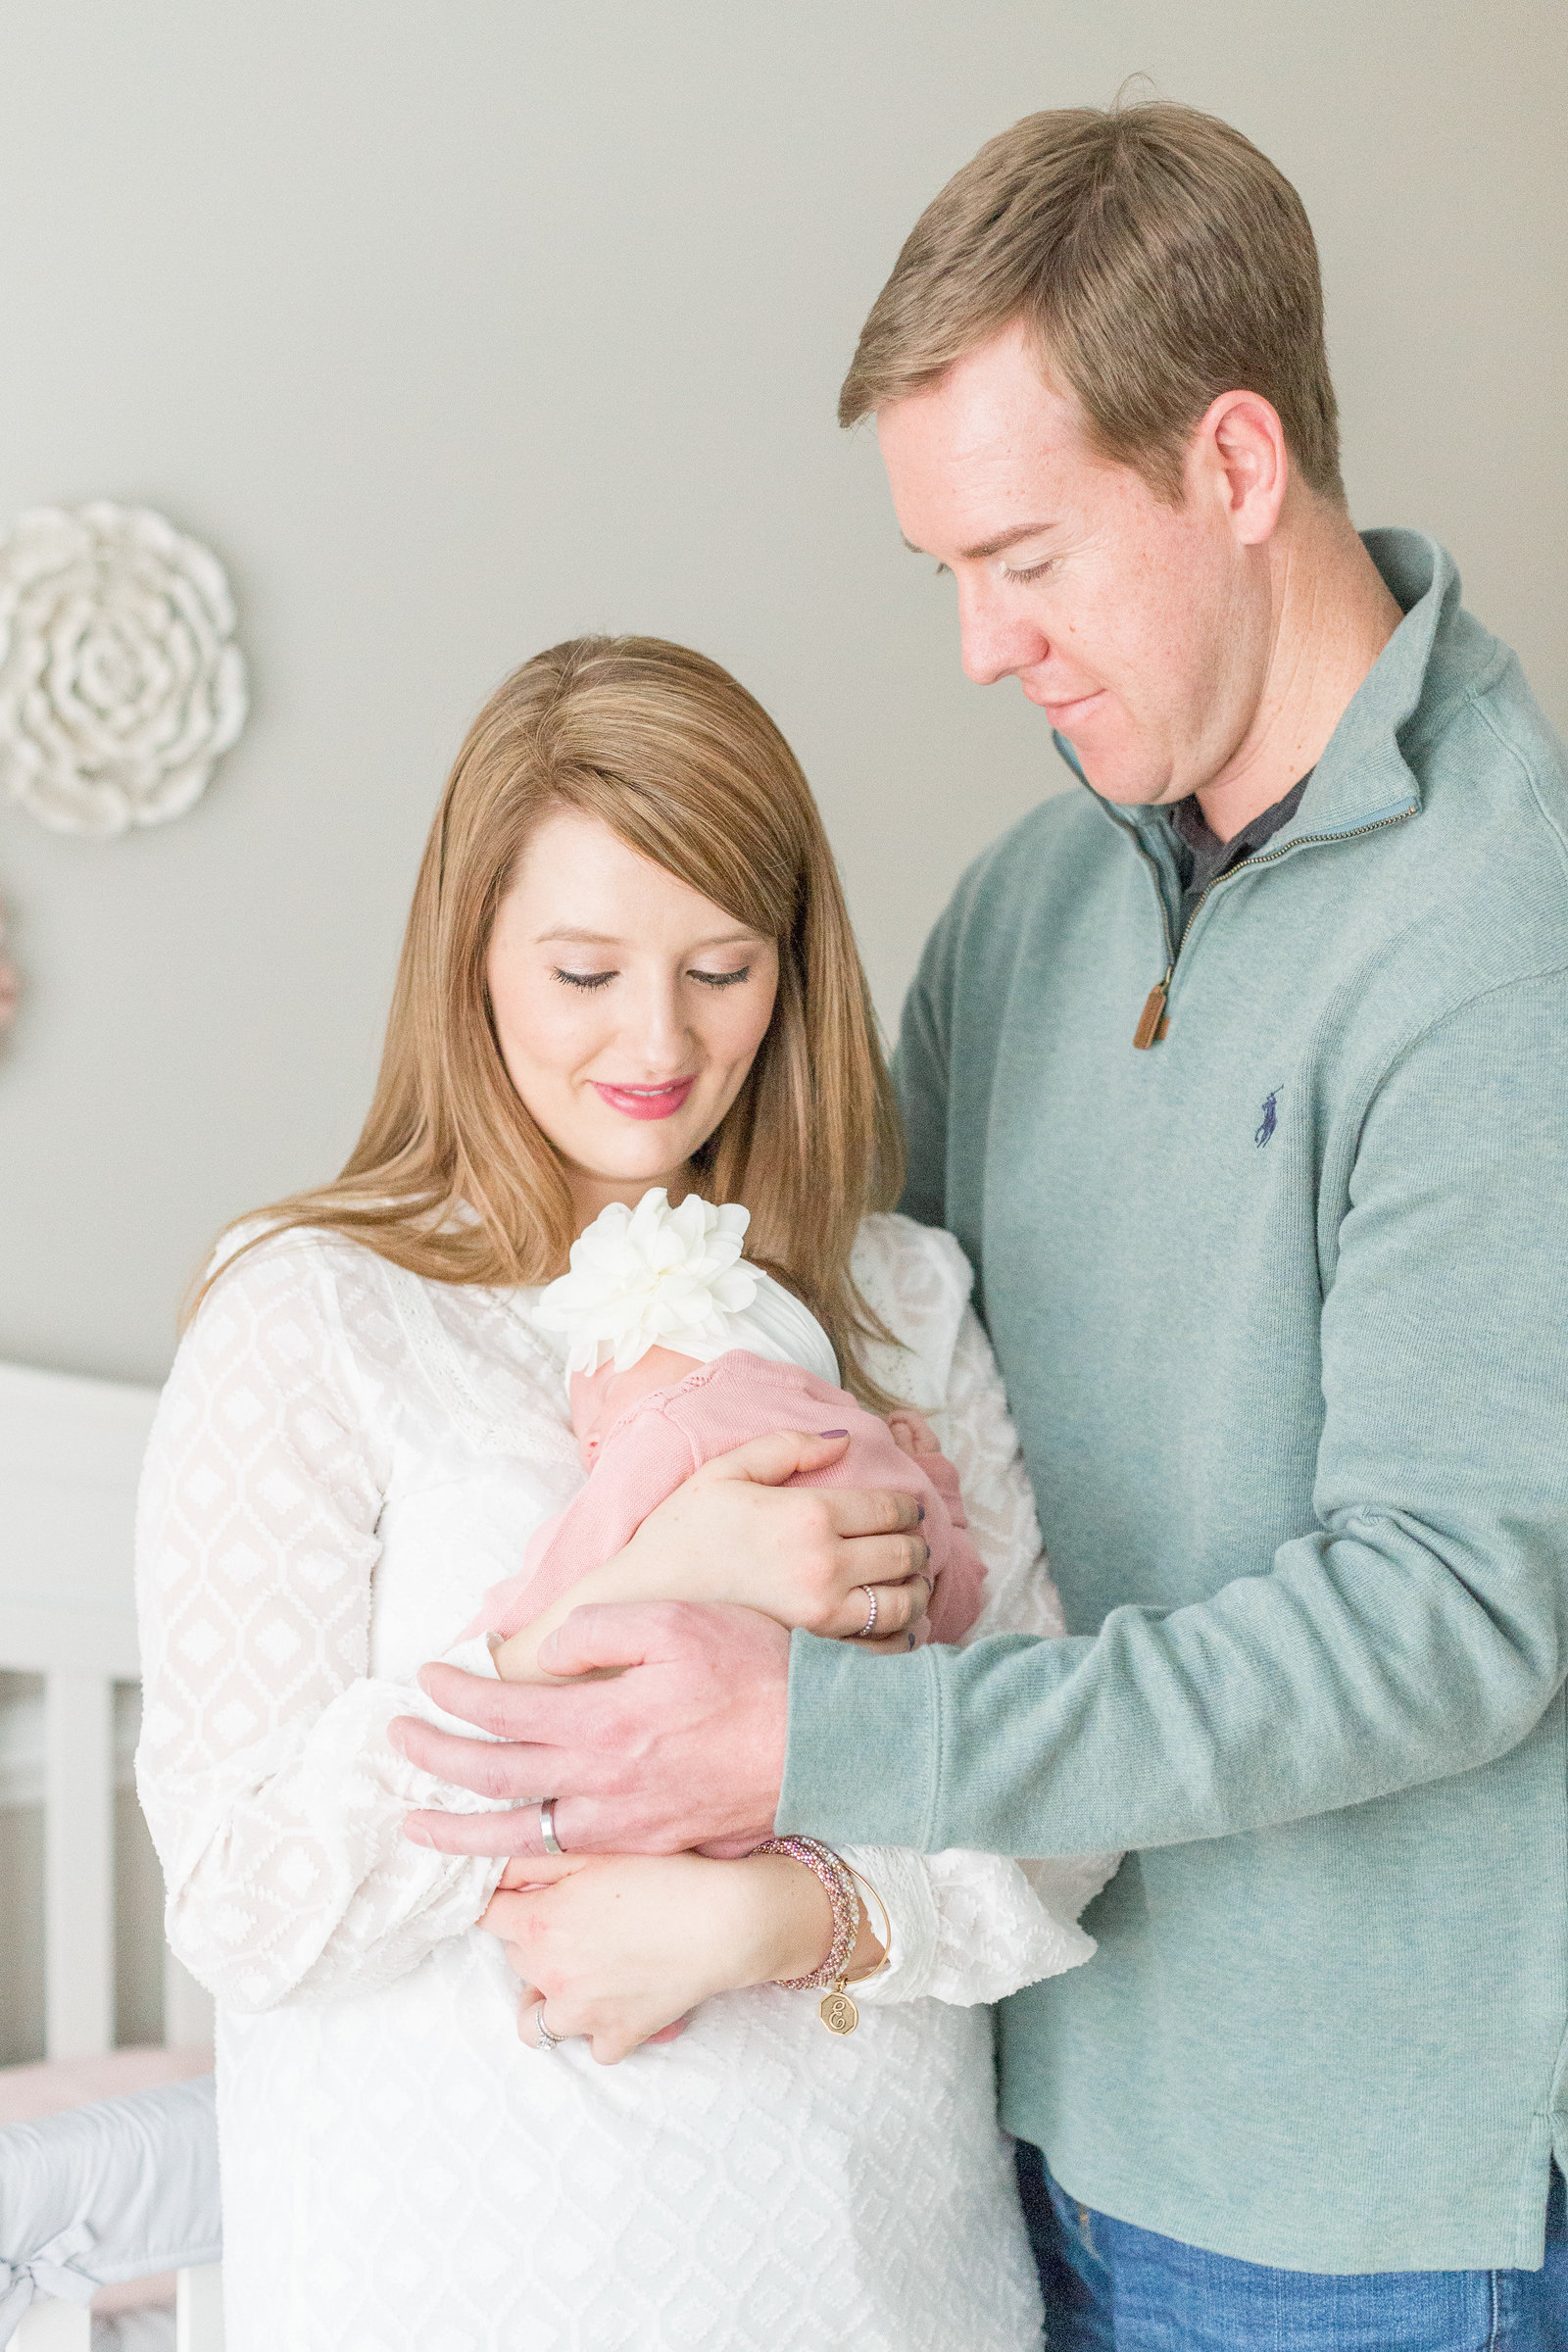 martin-family-lifestyle-in-home-newborn-baby-photo-session-002